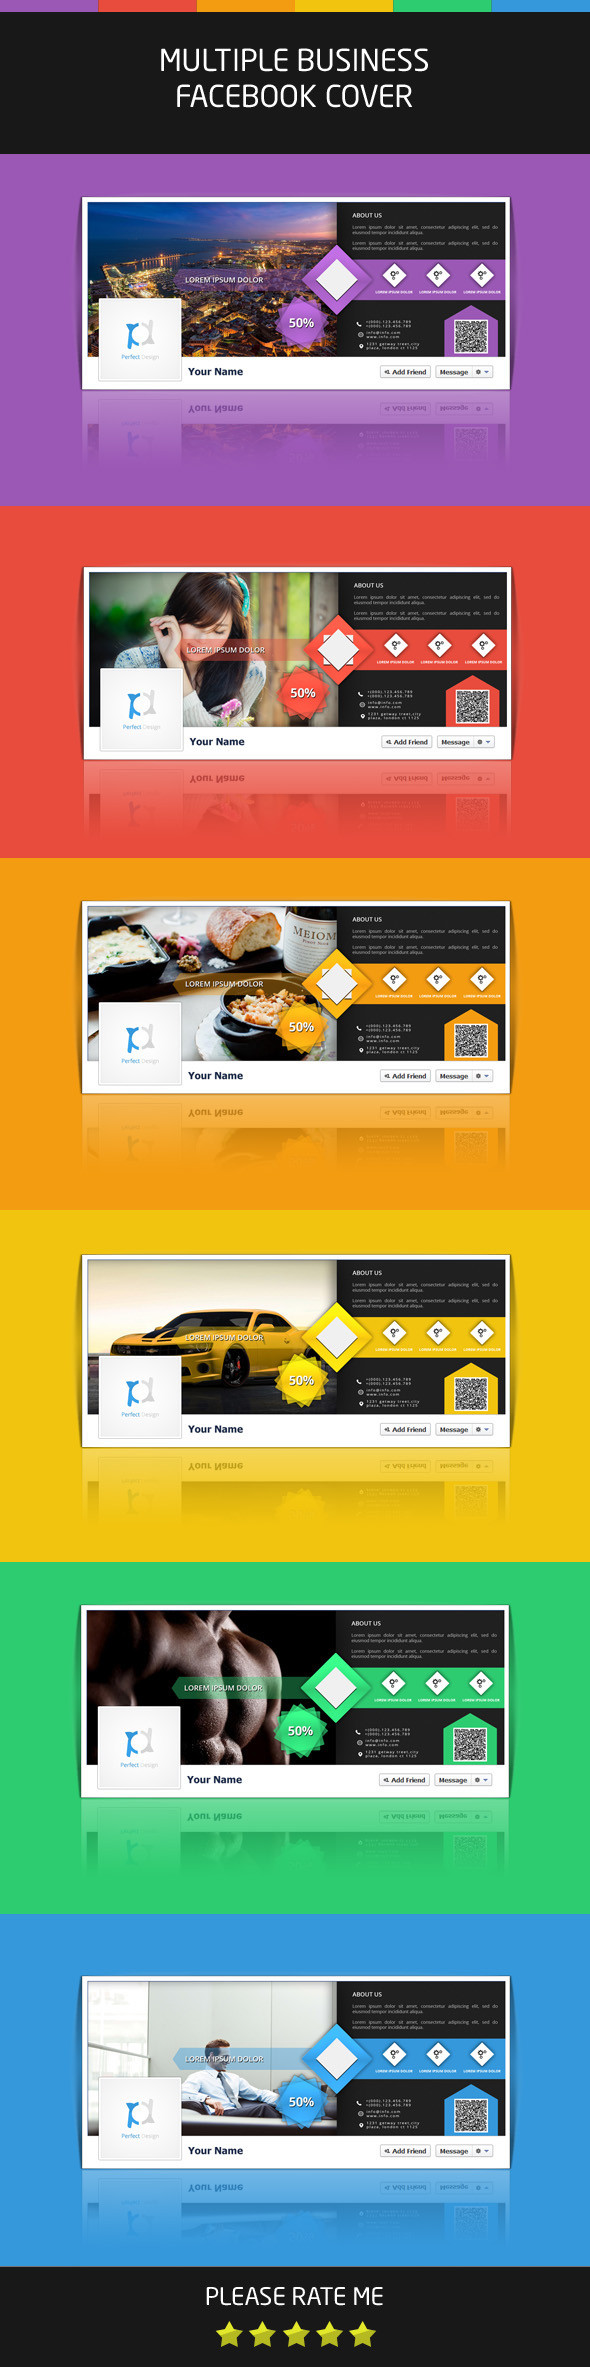 Multiple business facebook cover template on behance accmission Images